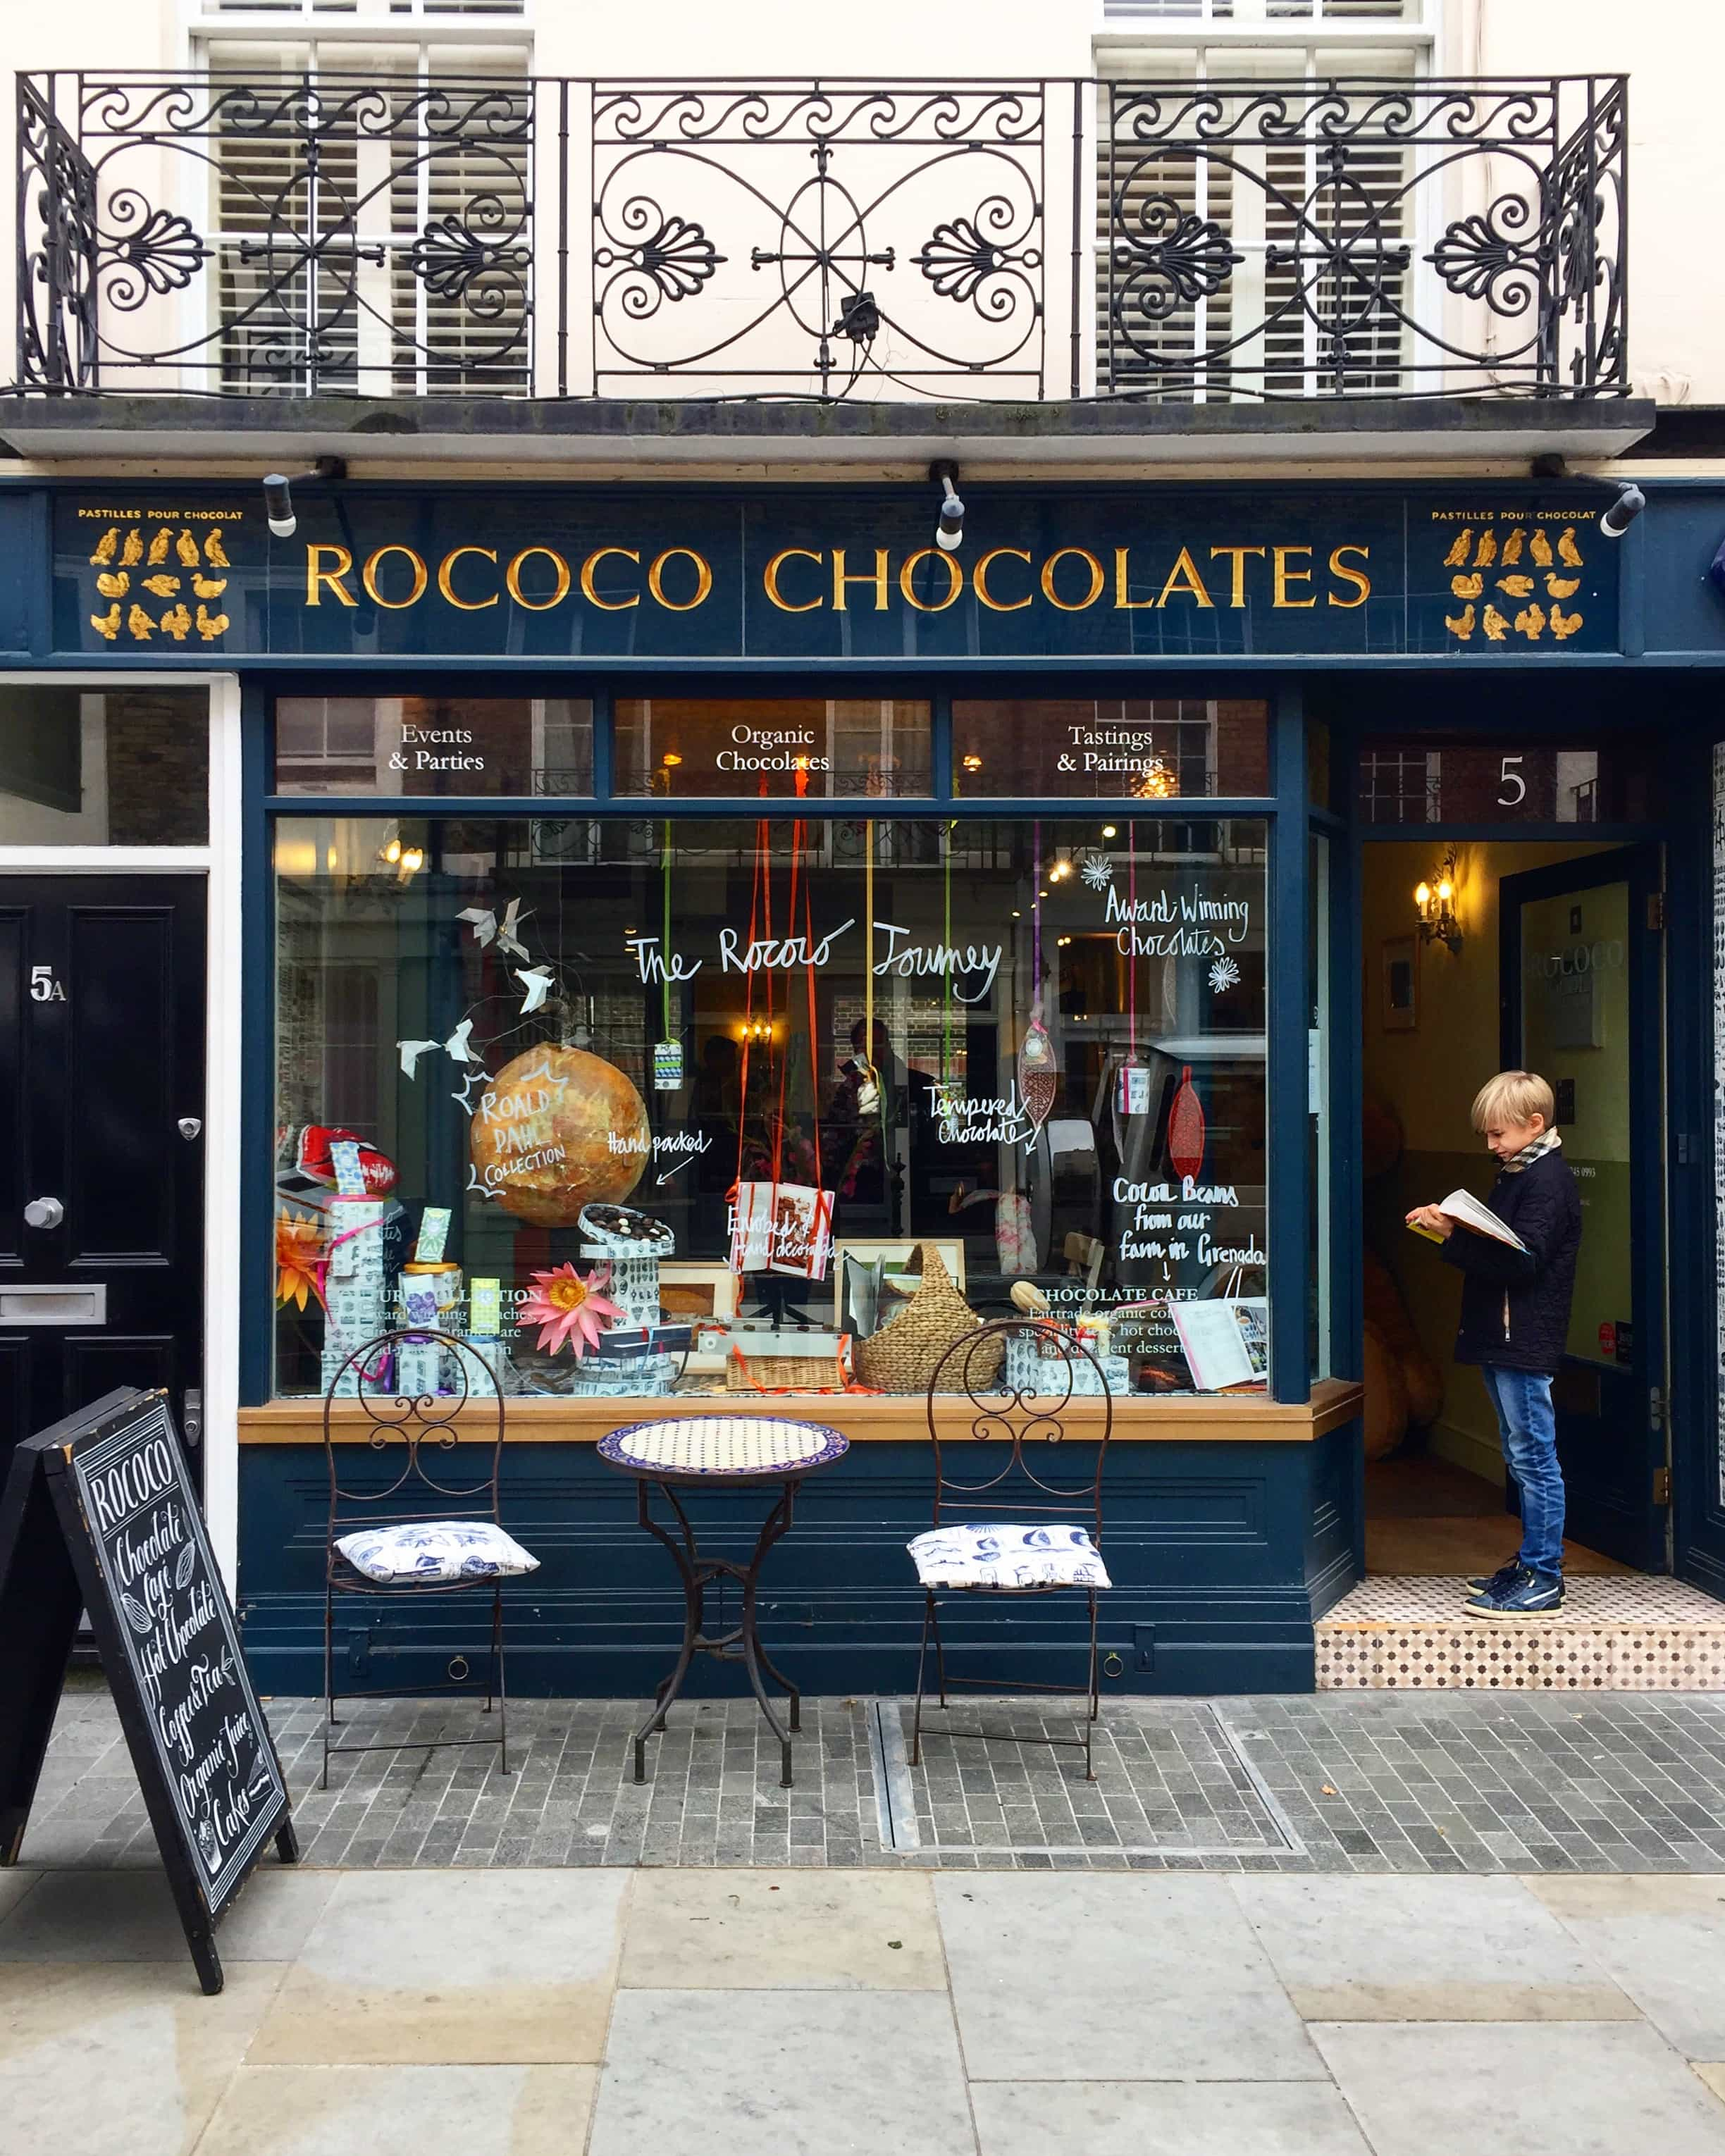 Signature Hot Chocolate, Rococo Chocolates- London's Best Hot Chocolates | 20 Great Places